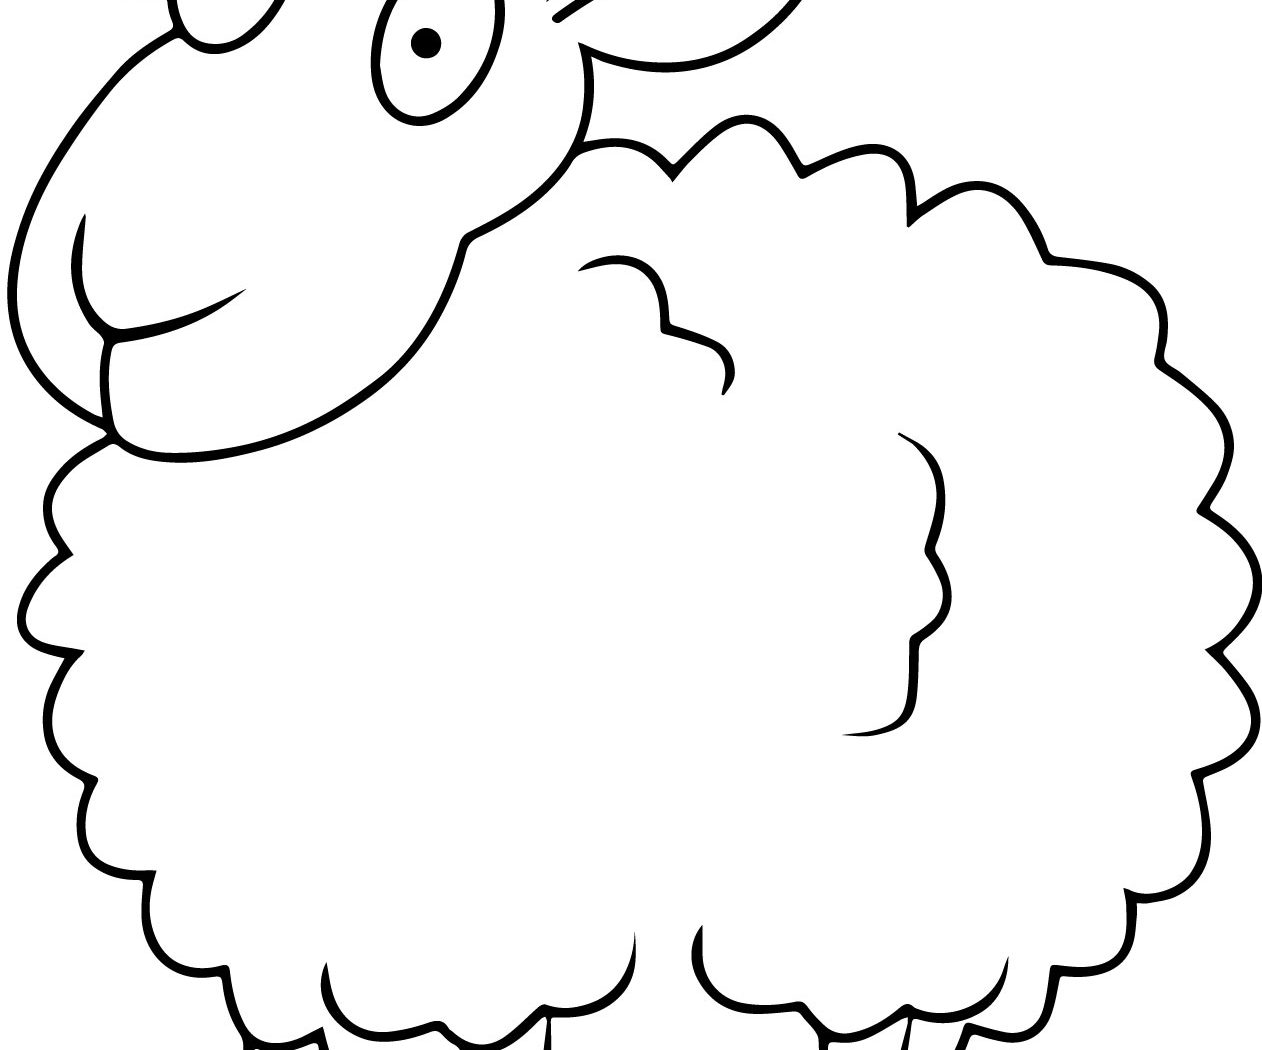 Sheep Head Drawing at GetDrawings.com | Free for personal use Sheep ...